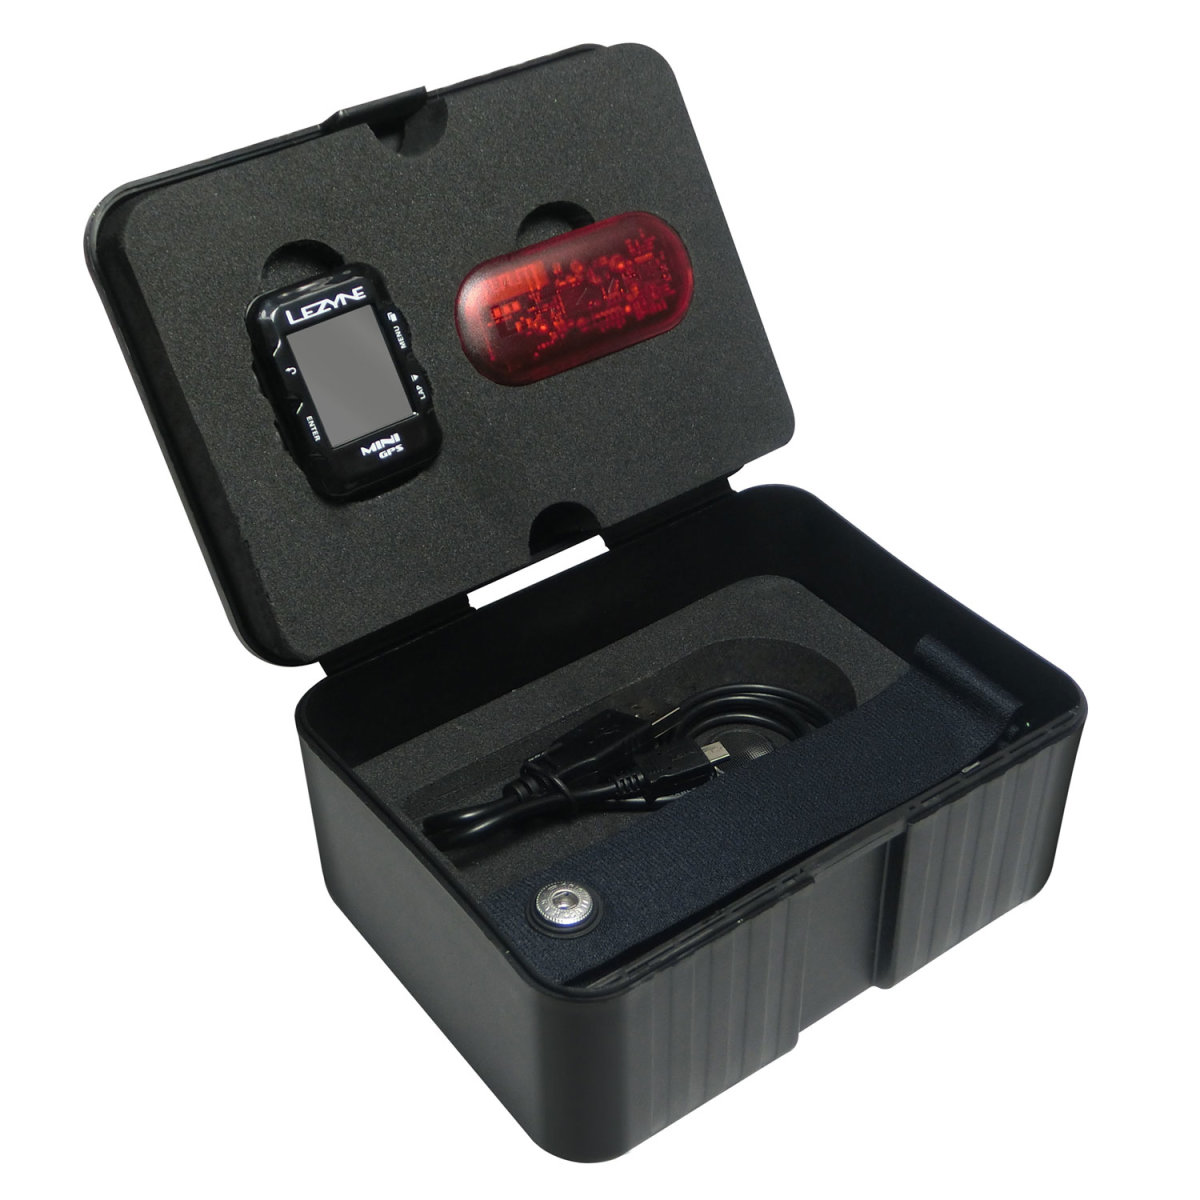 Компьютер Lezyne Mini GPS HR Loaded черный 10 Mini GPS HR Loaded 4712805 987269